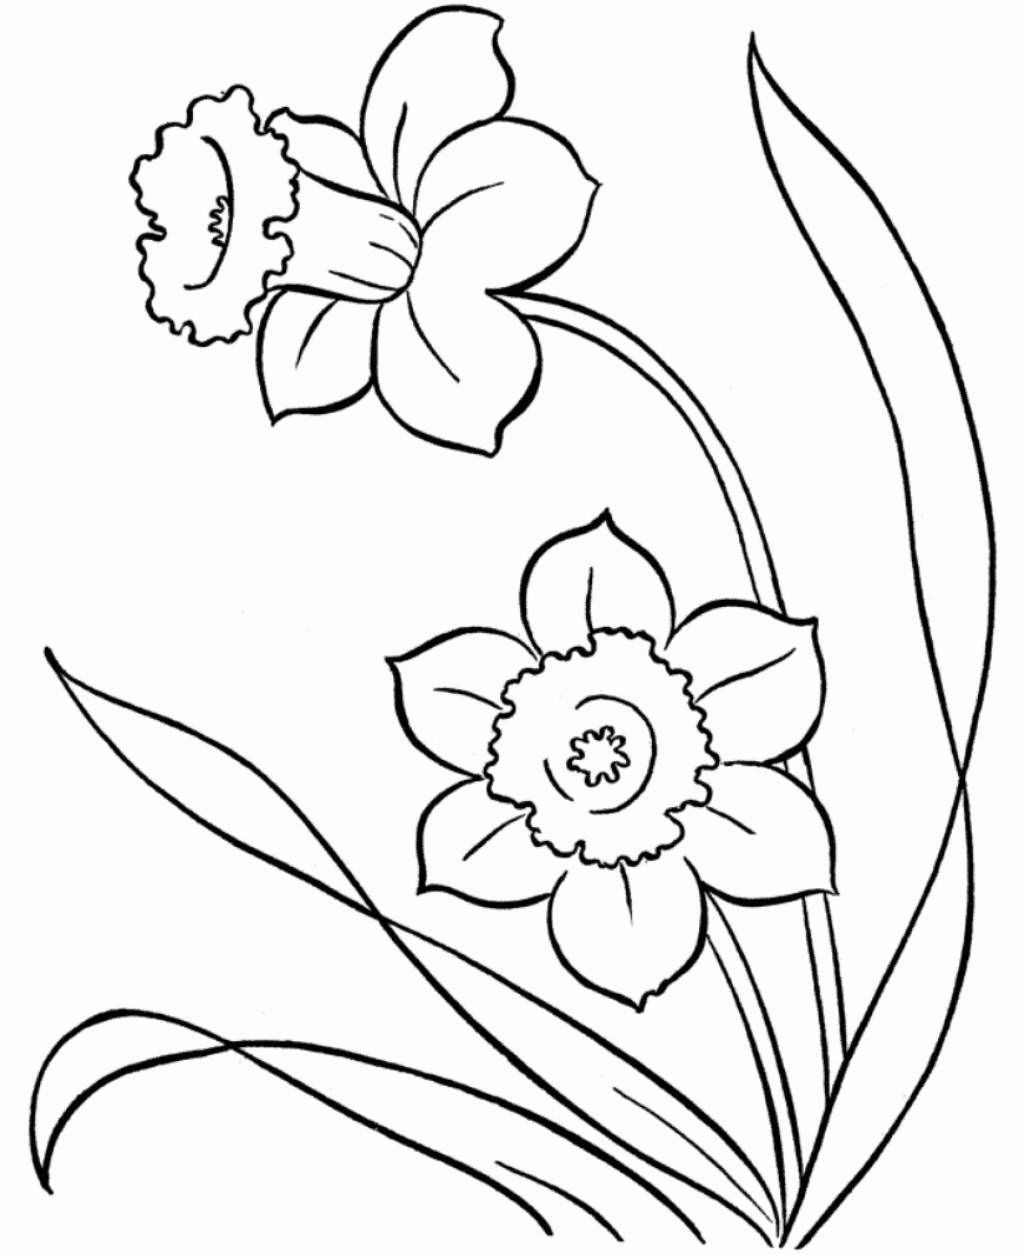 How to draw spring flowers images flower decoration ideas how to draw spring flowers images flower decoration ideas how to draw spring flowers step by mightylinksfo